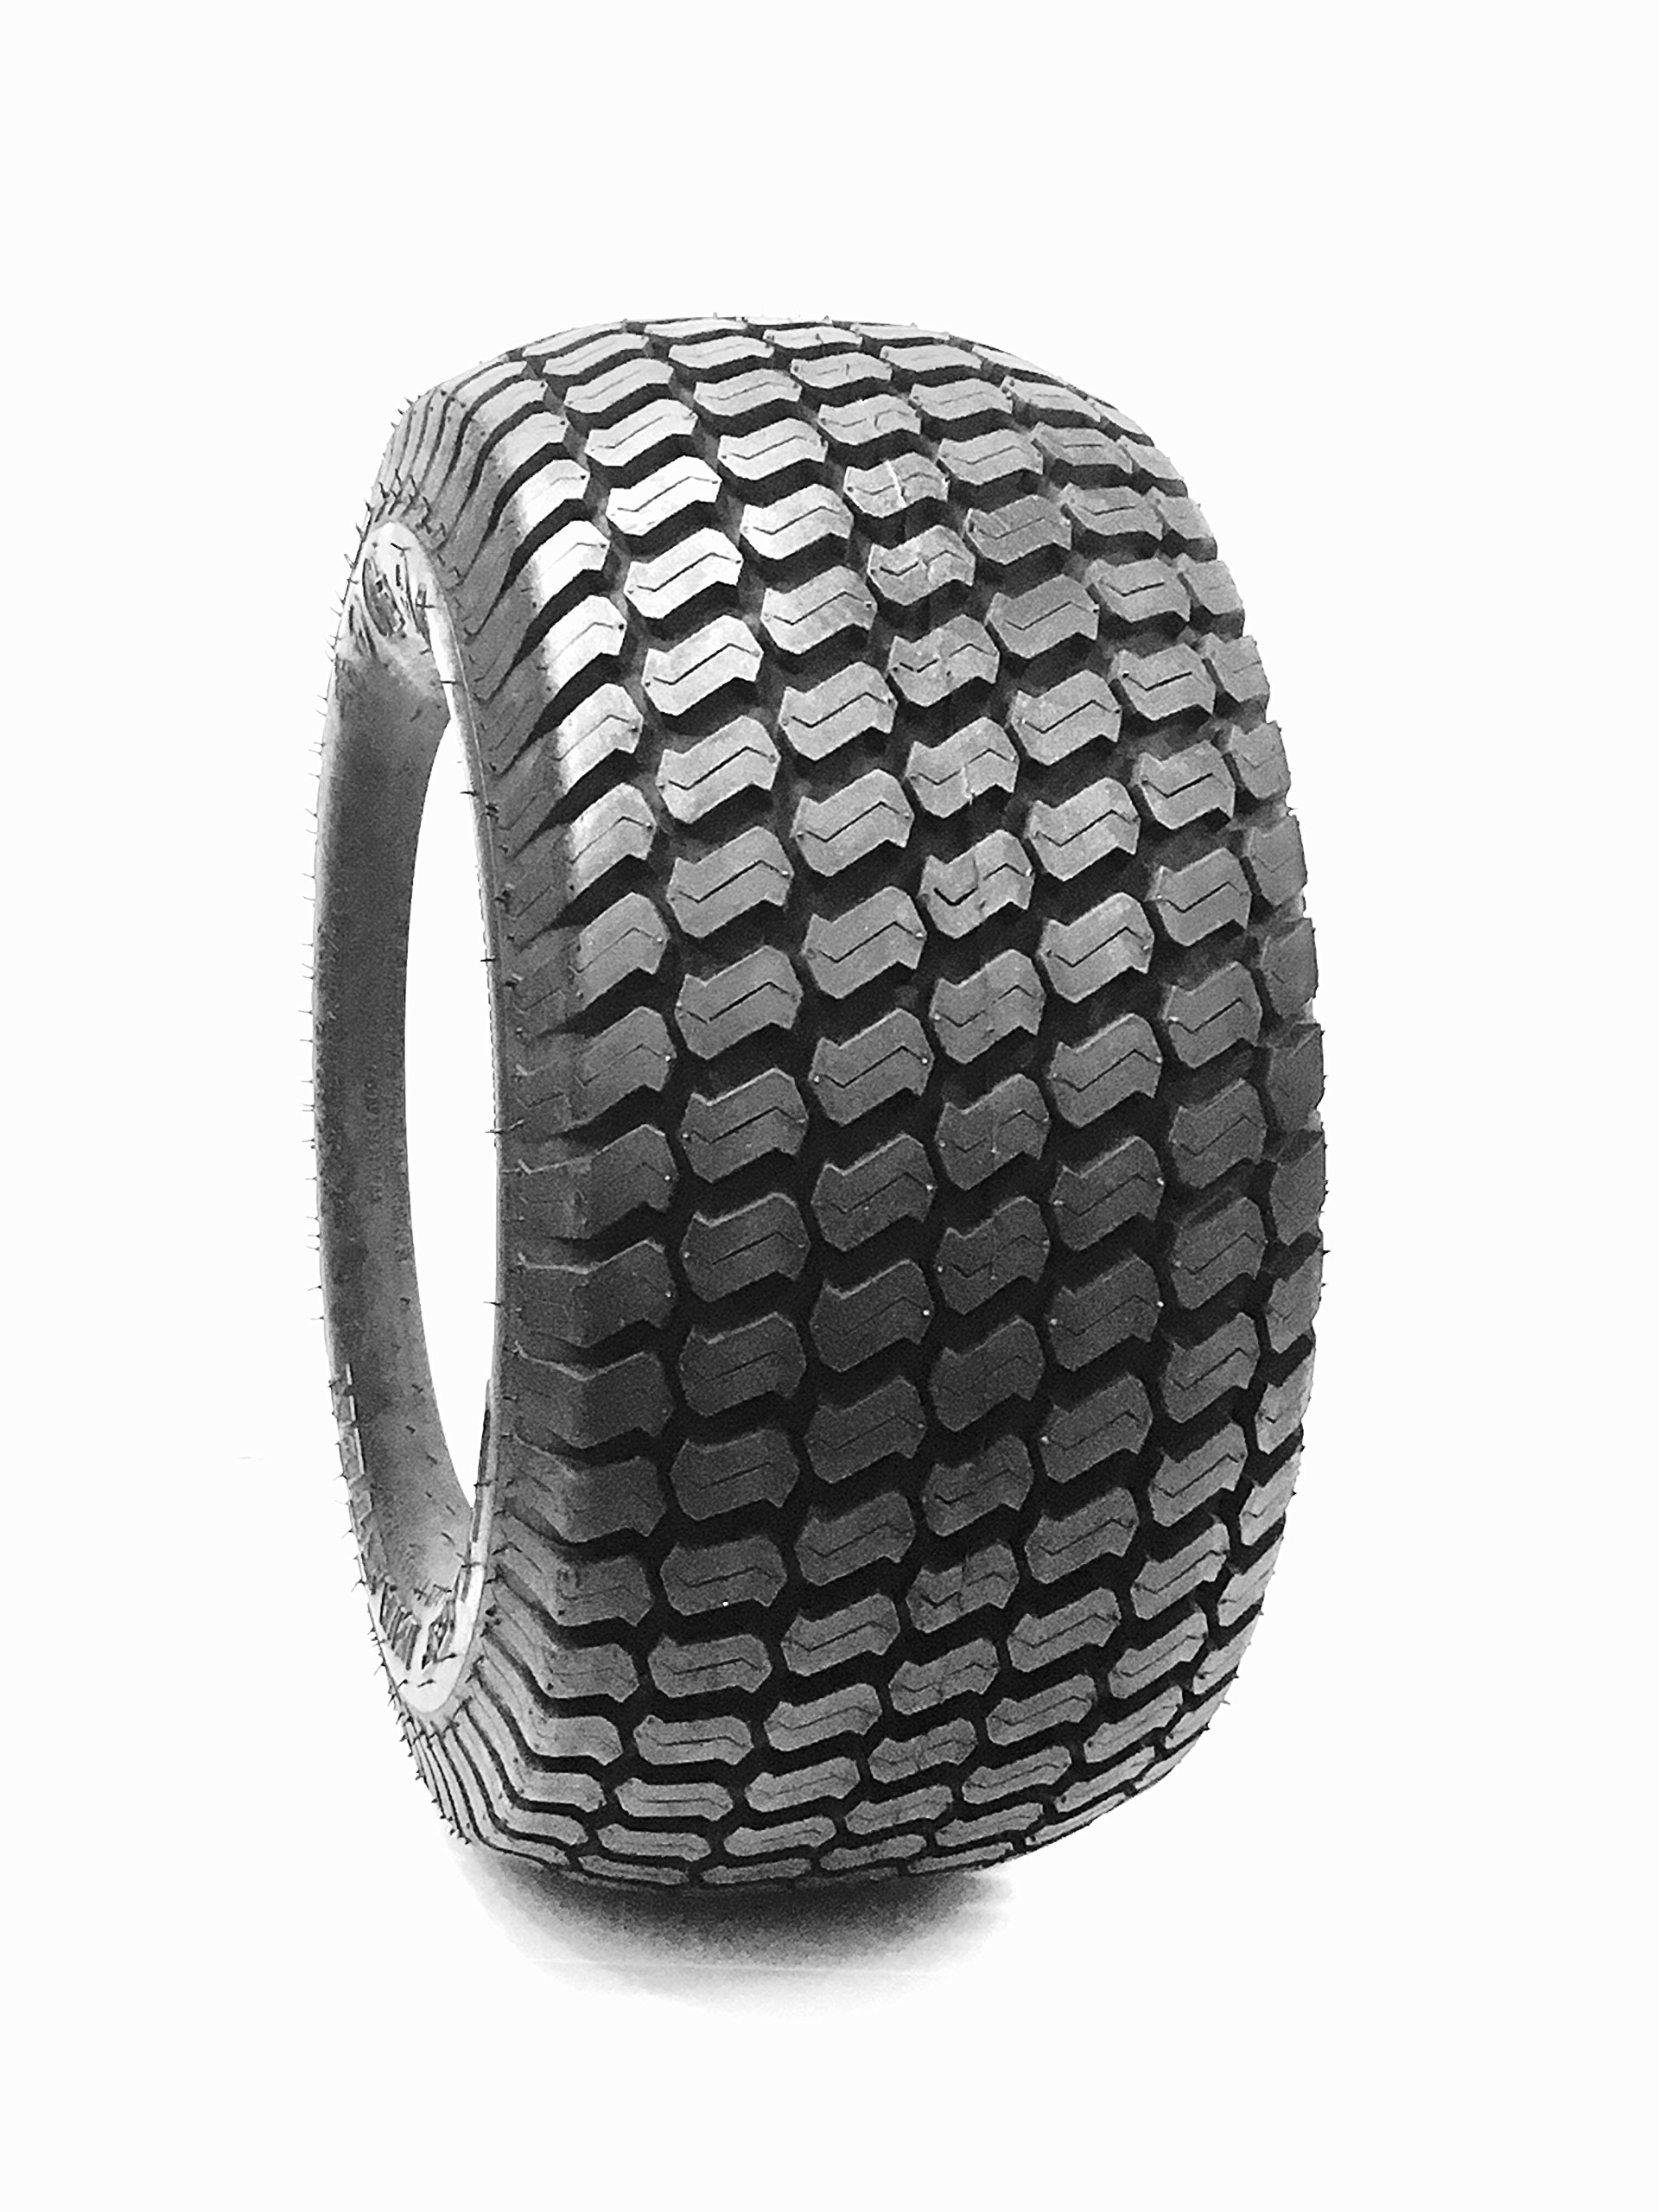 23x11.00-10 Litefoot Tire Fits Hustler Fastrak SDX and More! 4 ply Turf